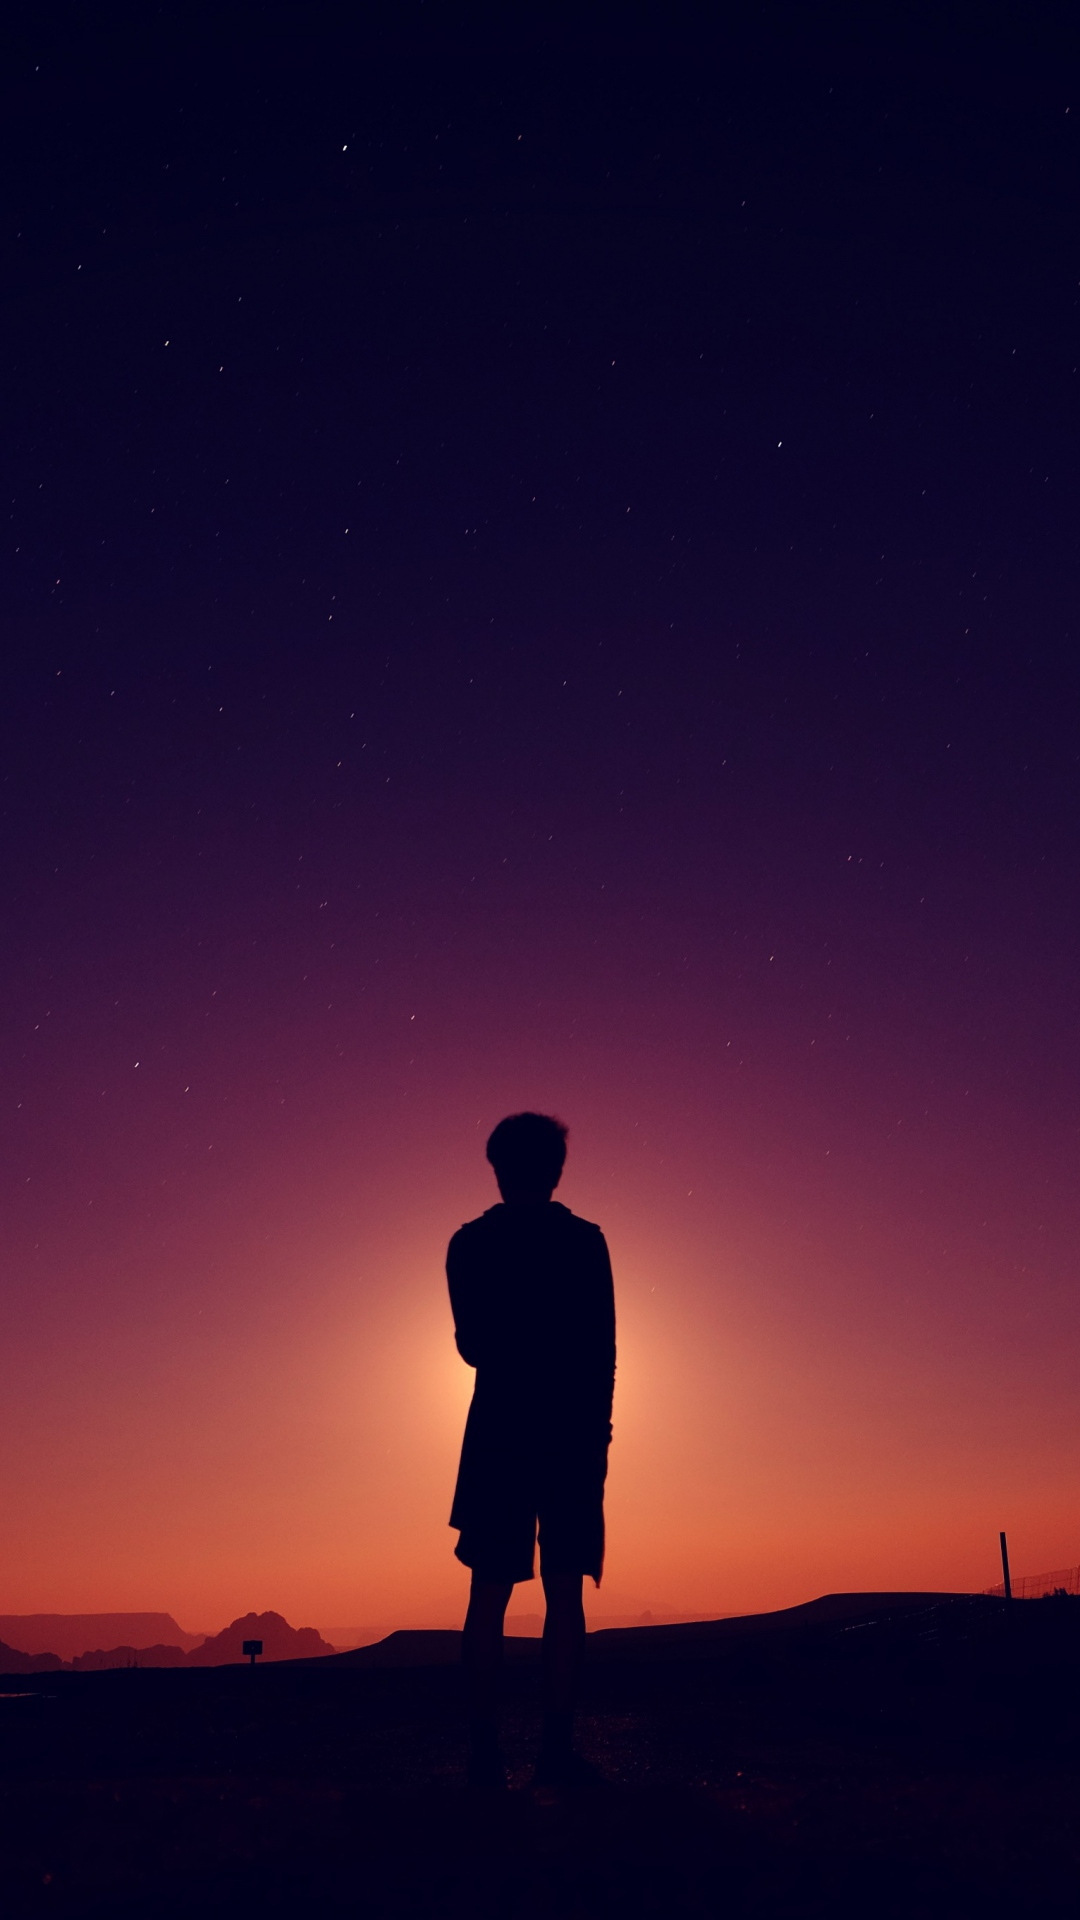 silhouette man night 115446 1080x1920 3Wallpapers : notre sélection de fonds décran du 15/09/2017